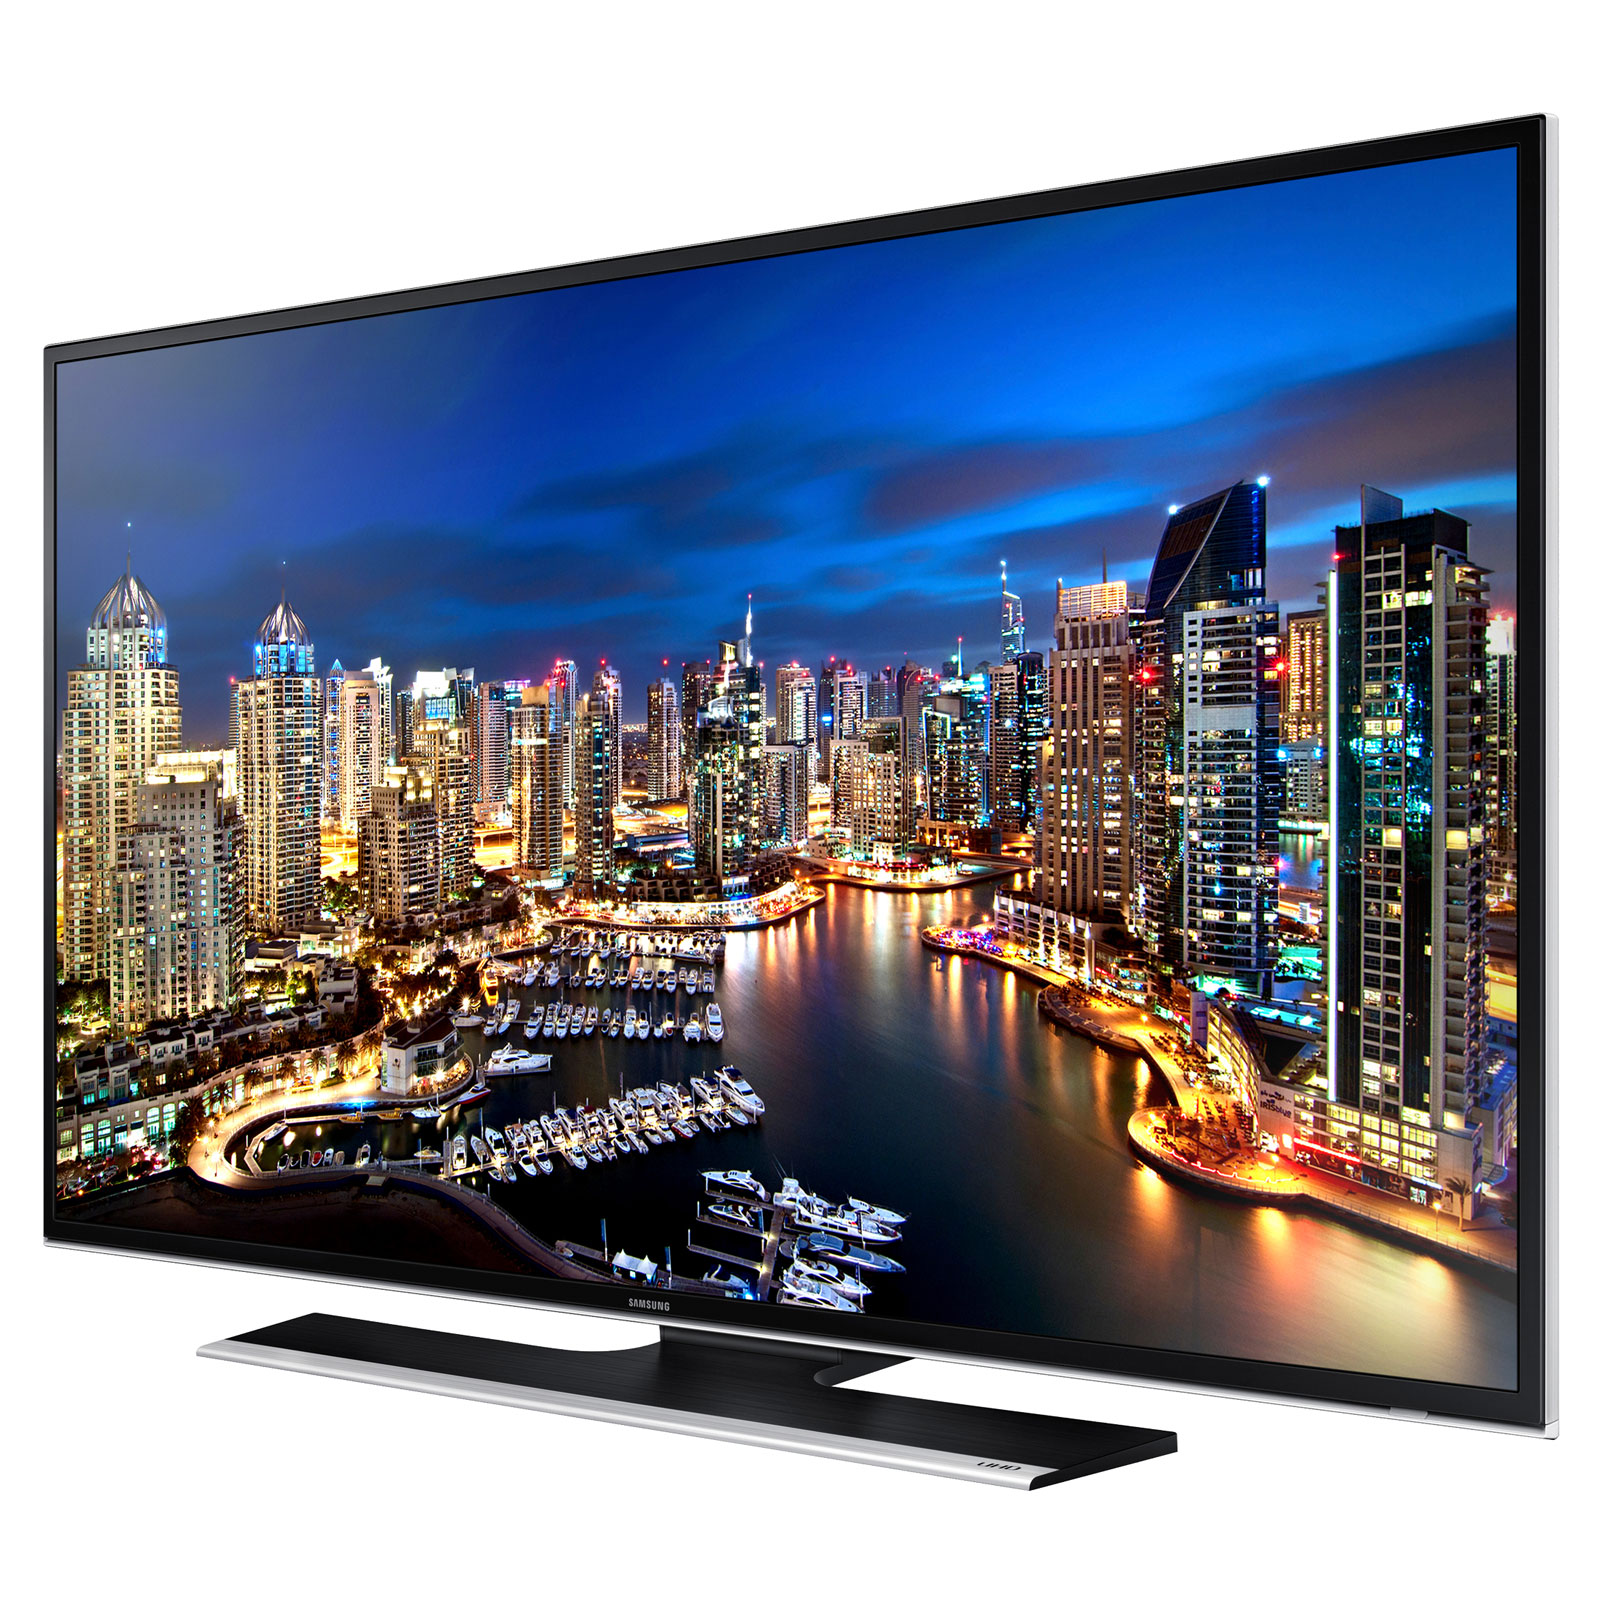 samsung ue55hu6900 tv samsung sur ldlc. Black Bedroom Furniture Sets. Home Design Ideas